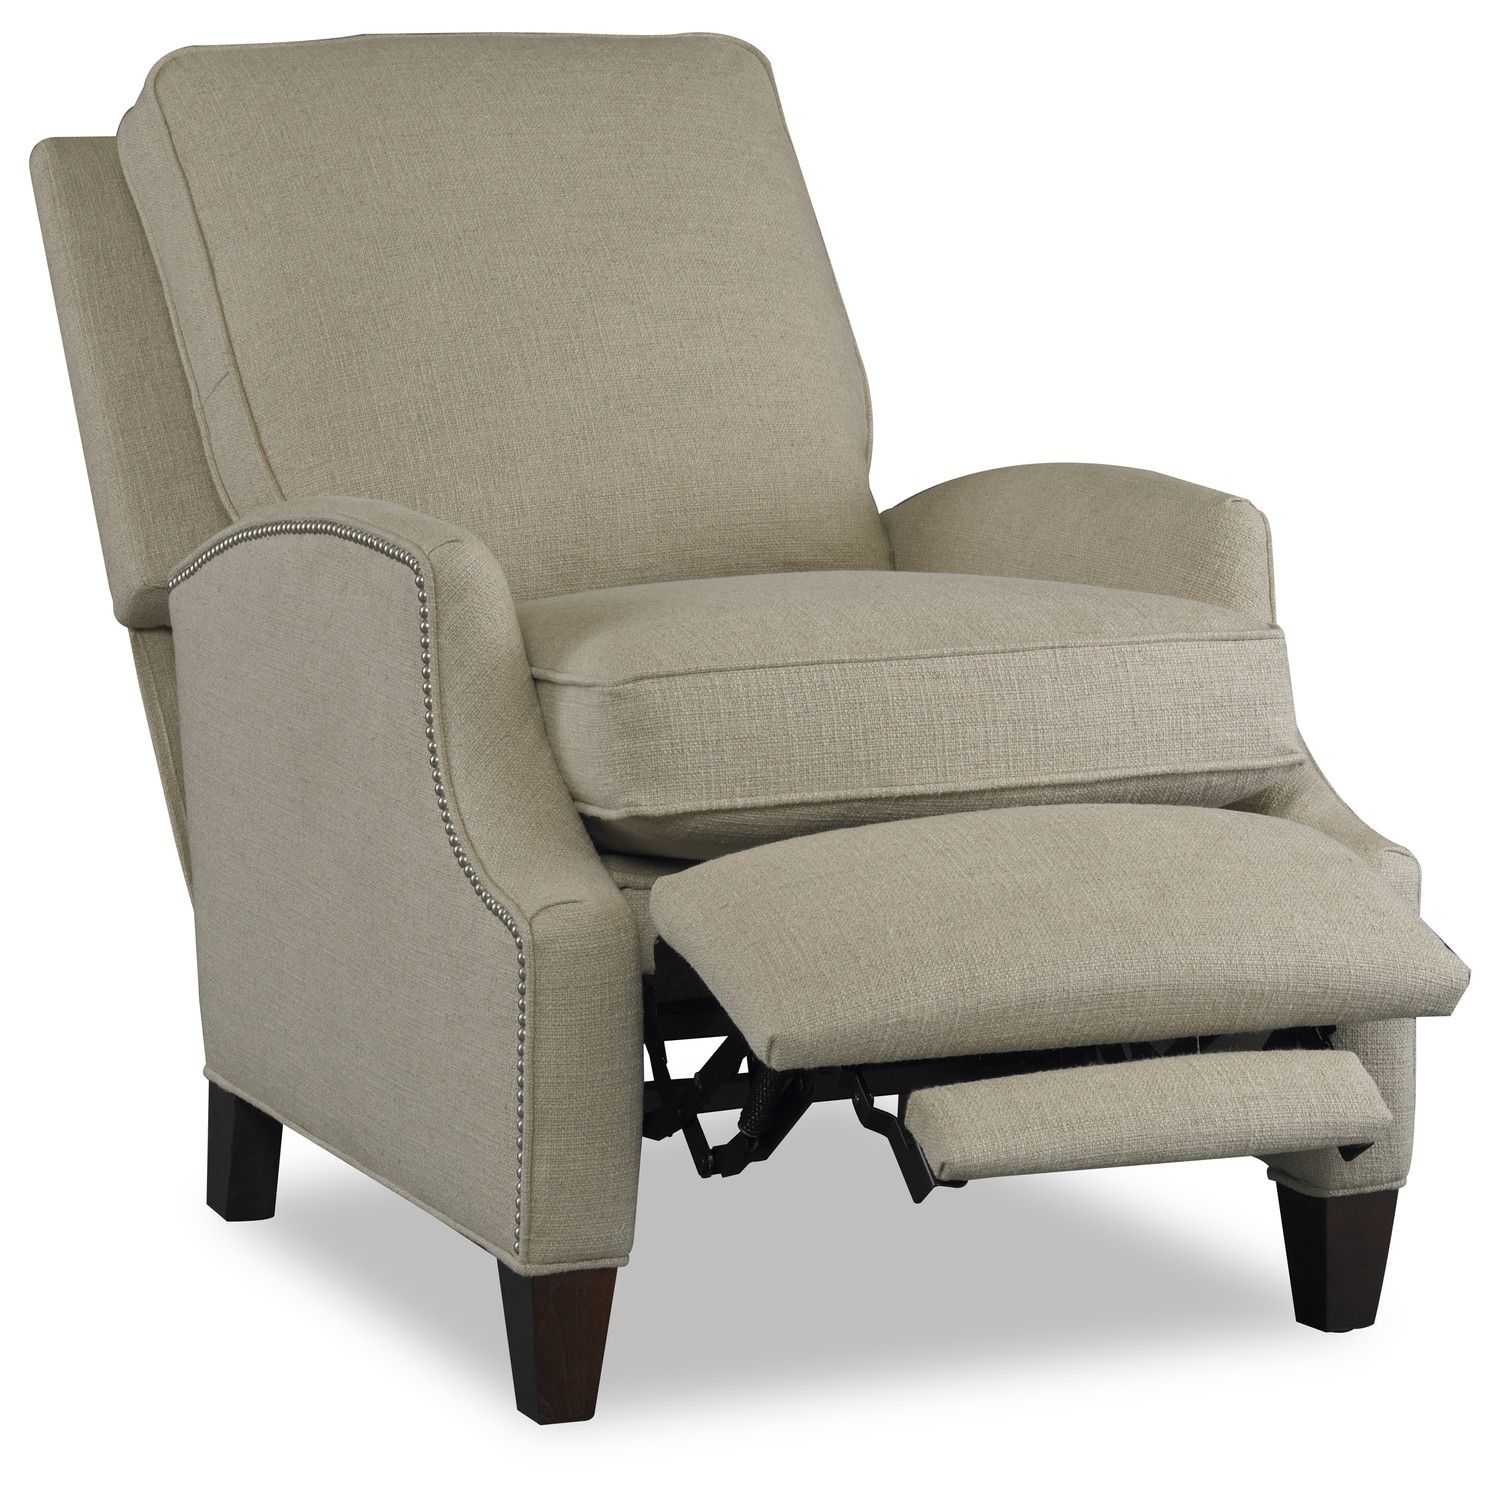 Dimitrius recliner fabric or leather Pin by